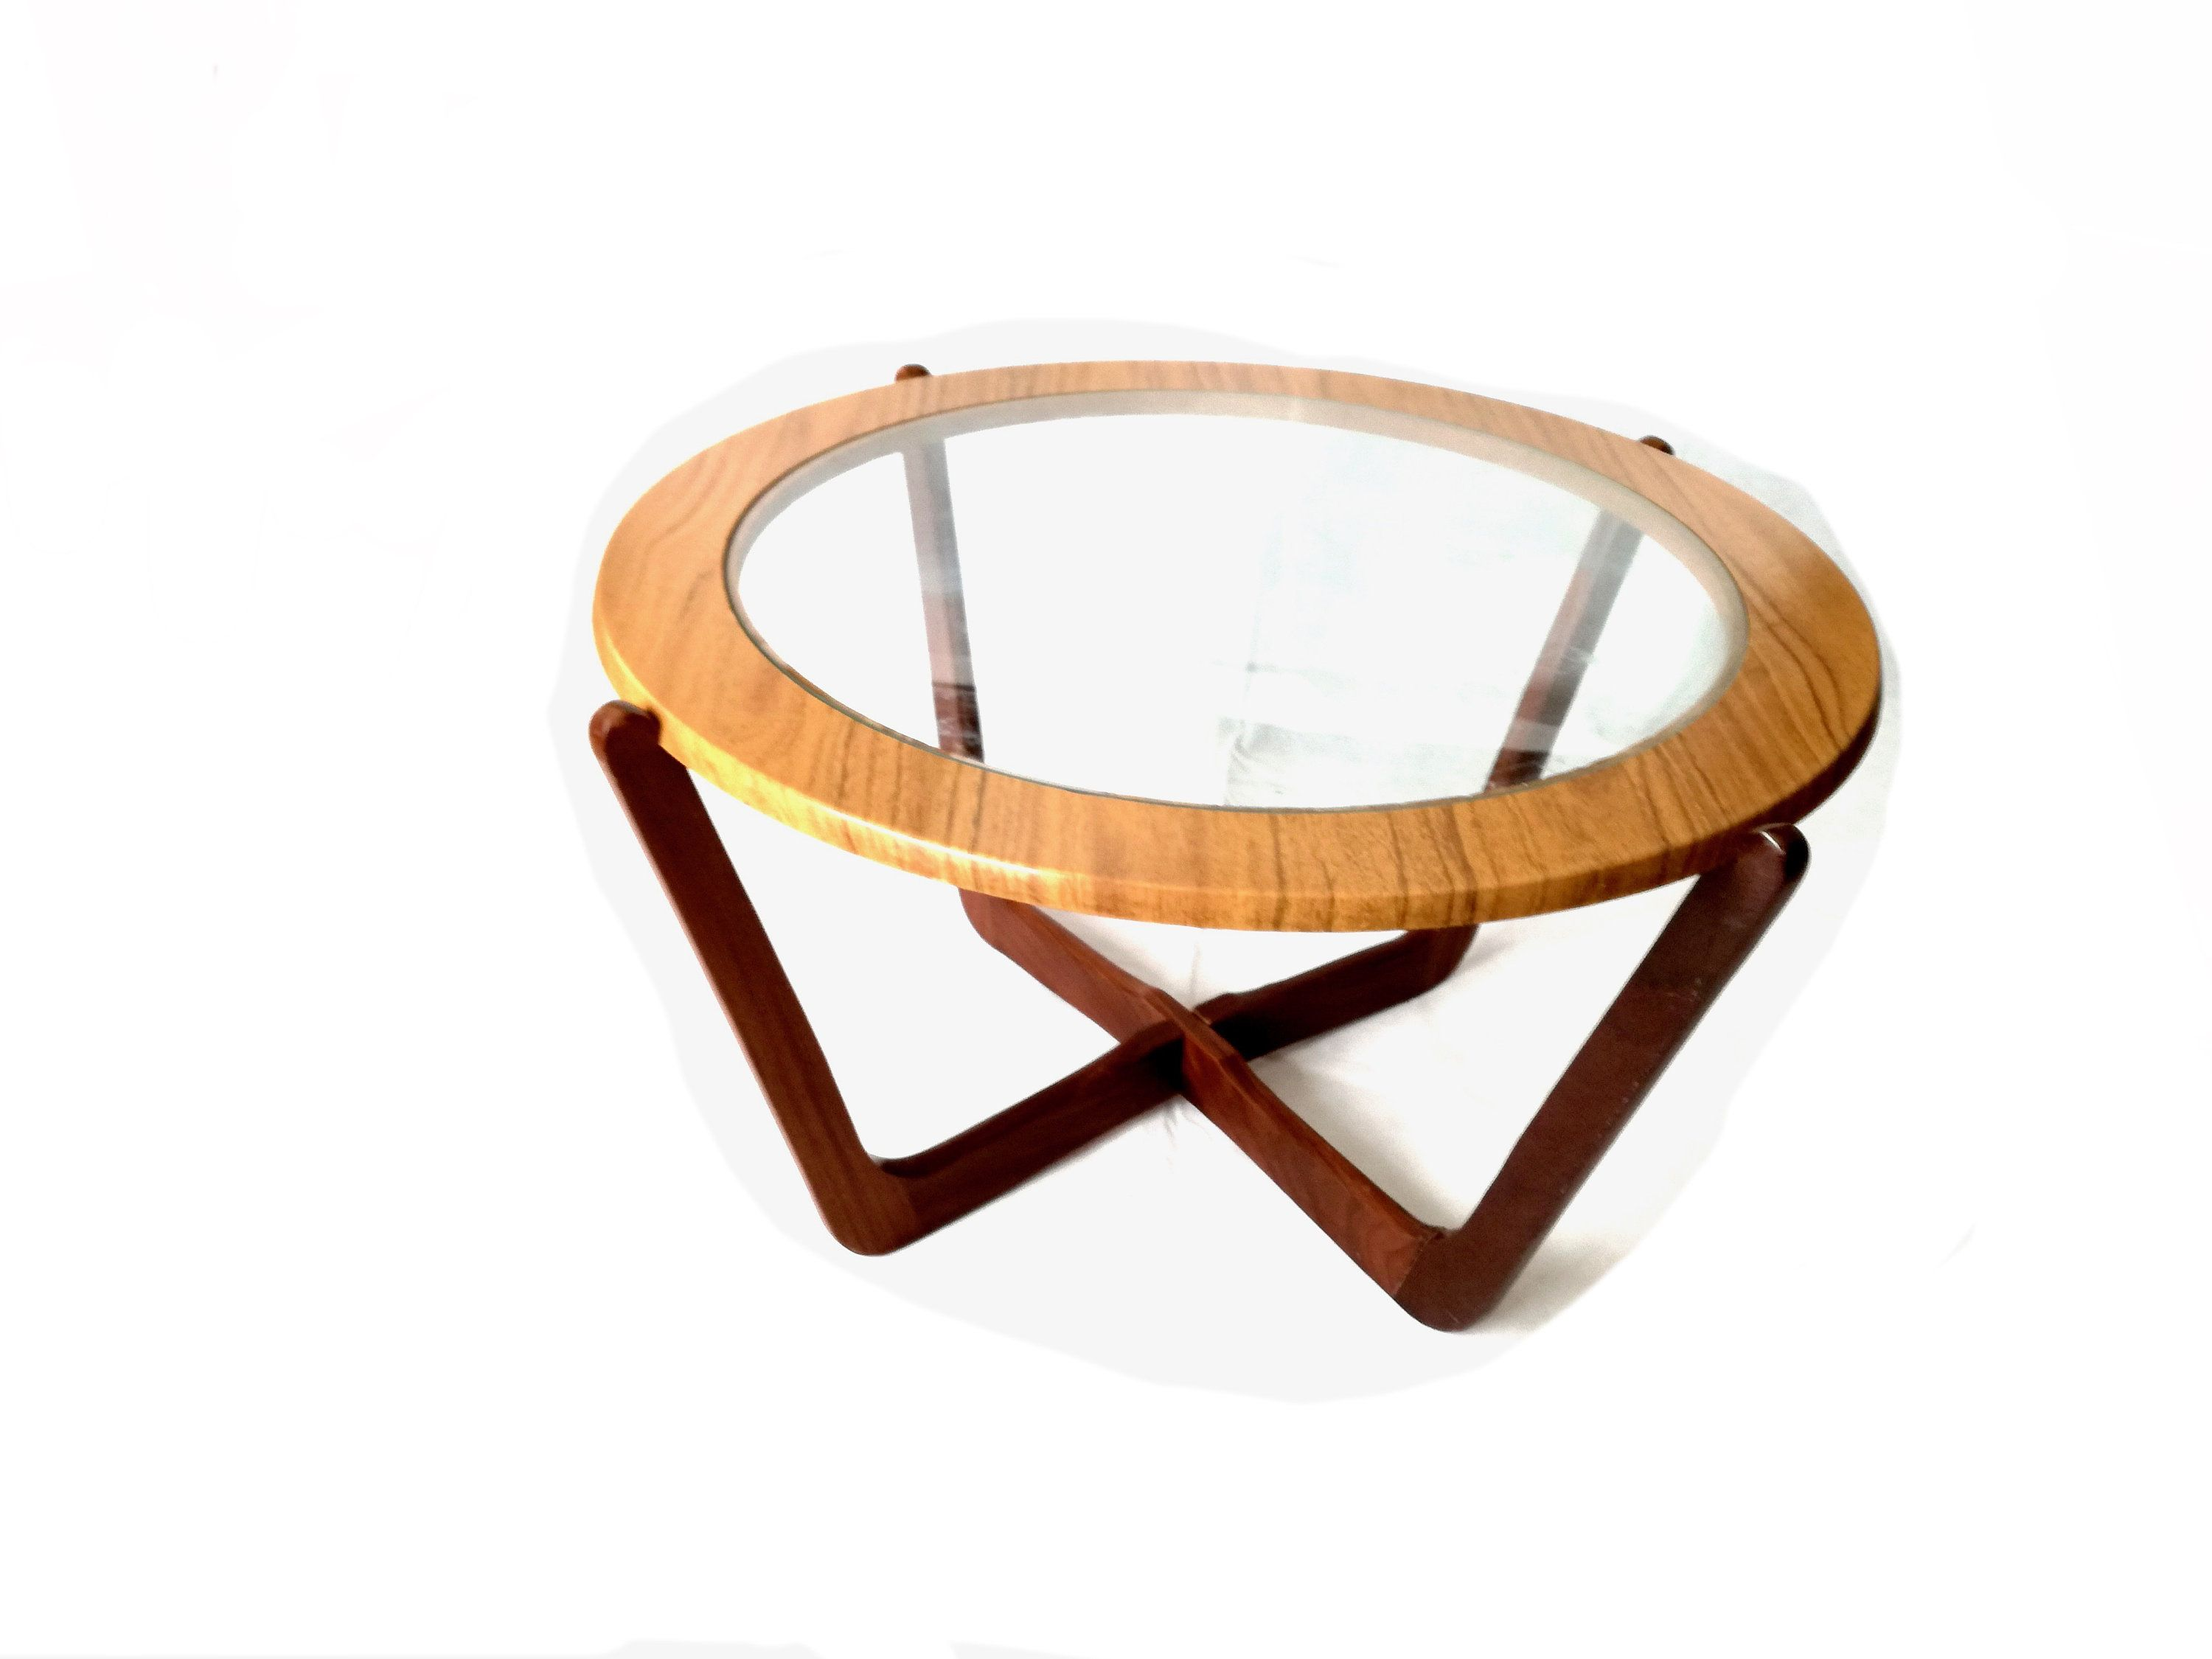 Round glass table top view on hold emma  retro coffee table vintage  danish teak  solid teak